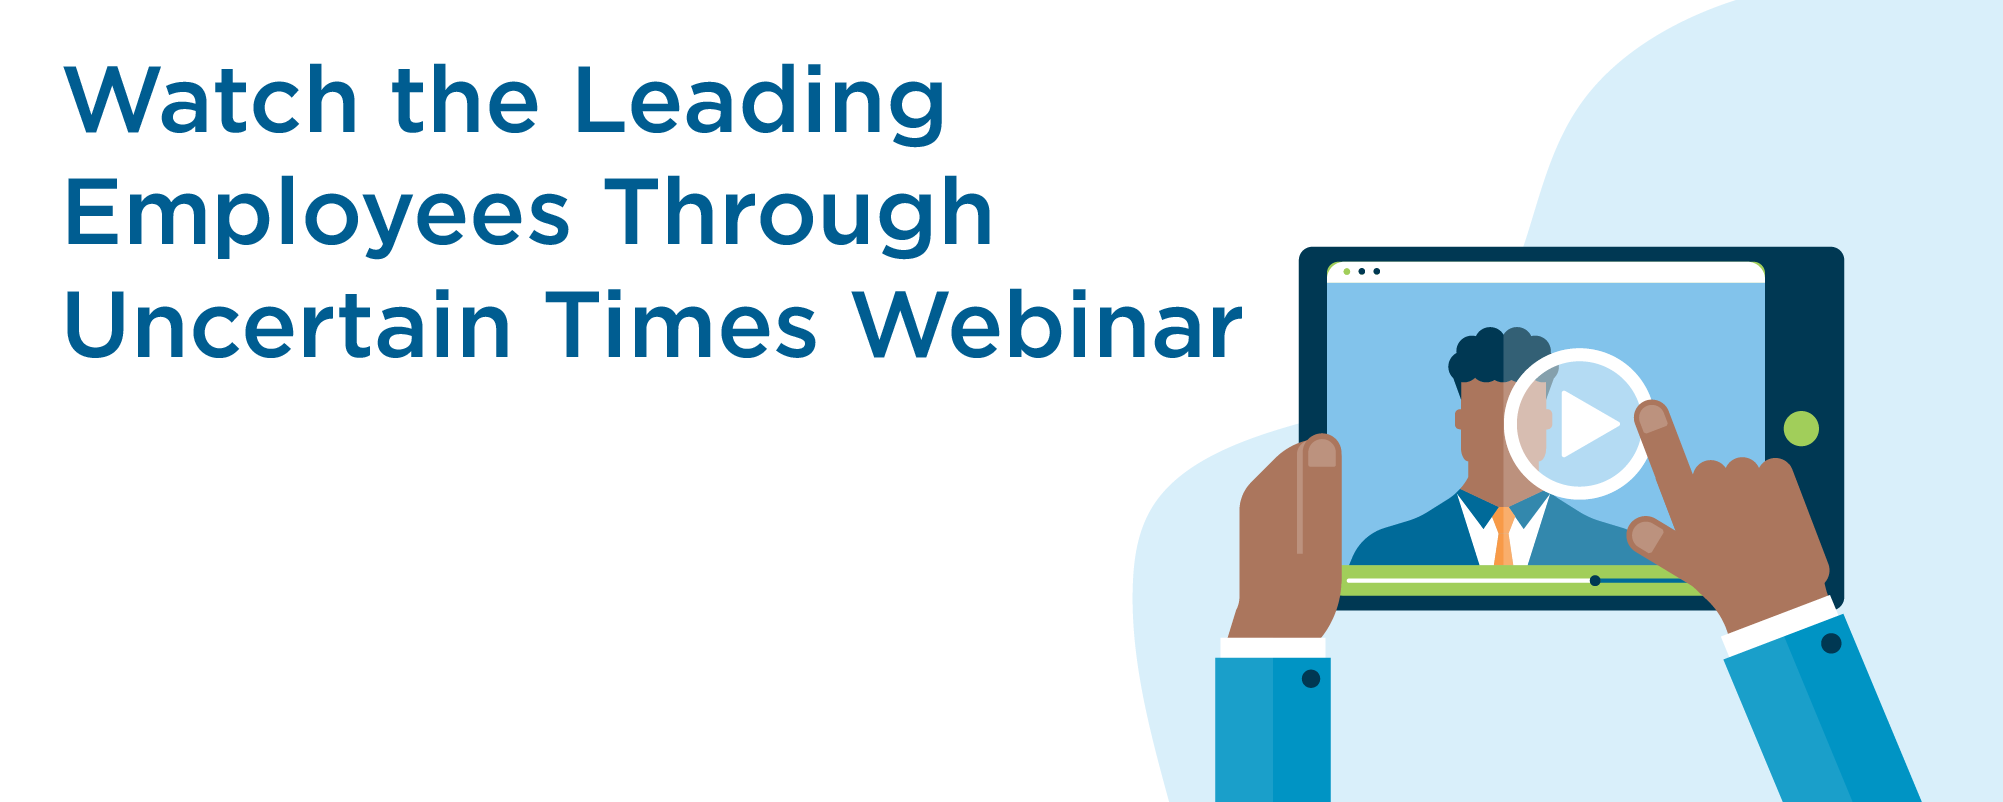 watch the leading employees through uncertain times webinar